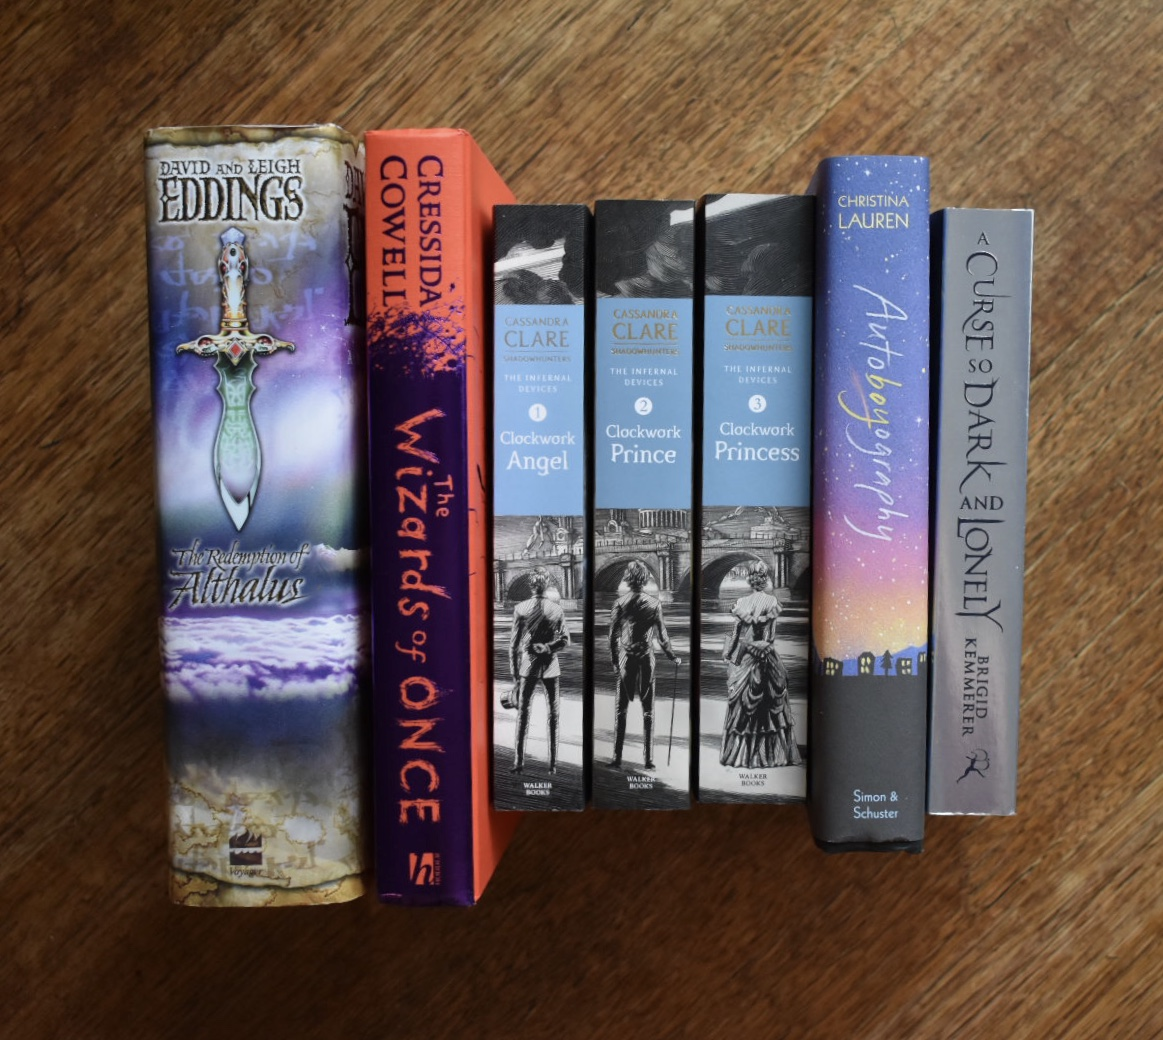 Photo of book spines. Books are The Redemption of Althalus, The Wizards of Once, Clockwork Angel, Clockwork Prince, Clockwork Princess, Autoboyography, and A Curse So Dark and Lonely.